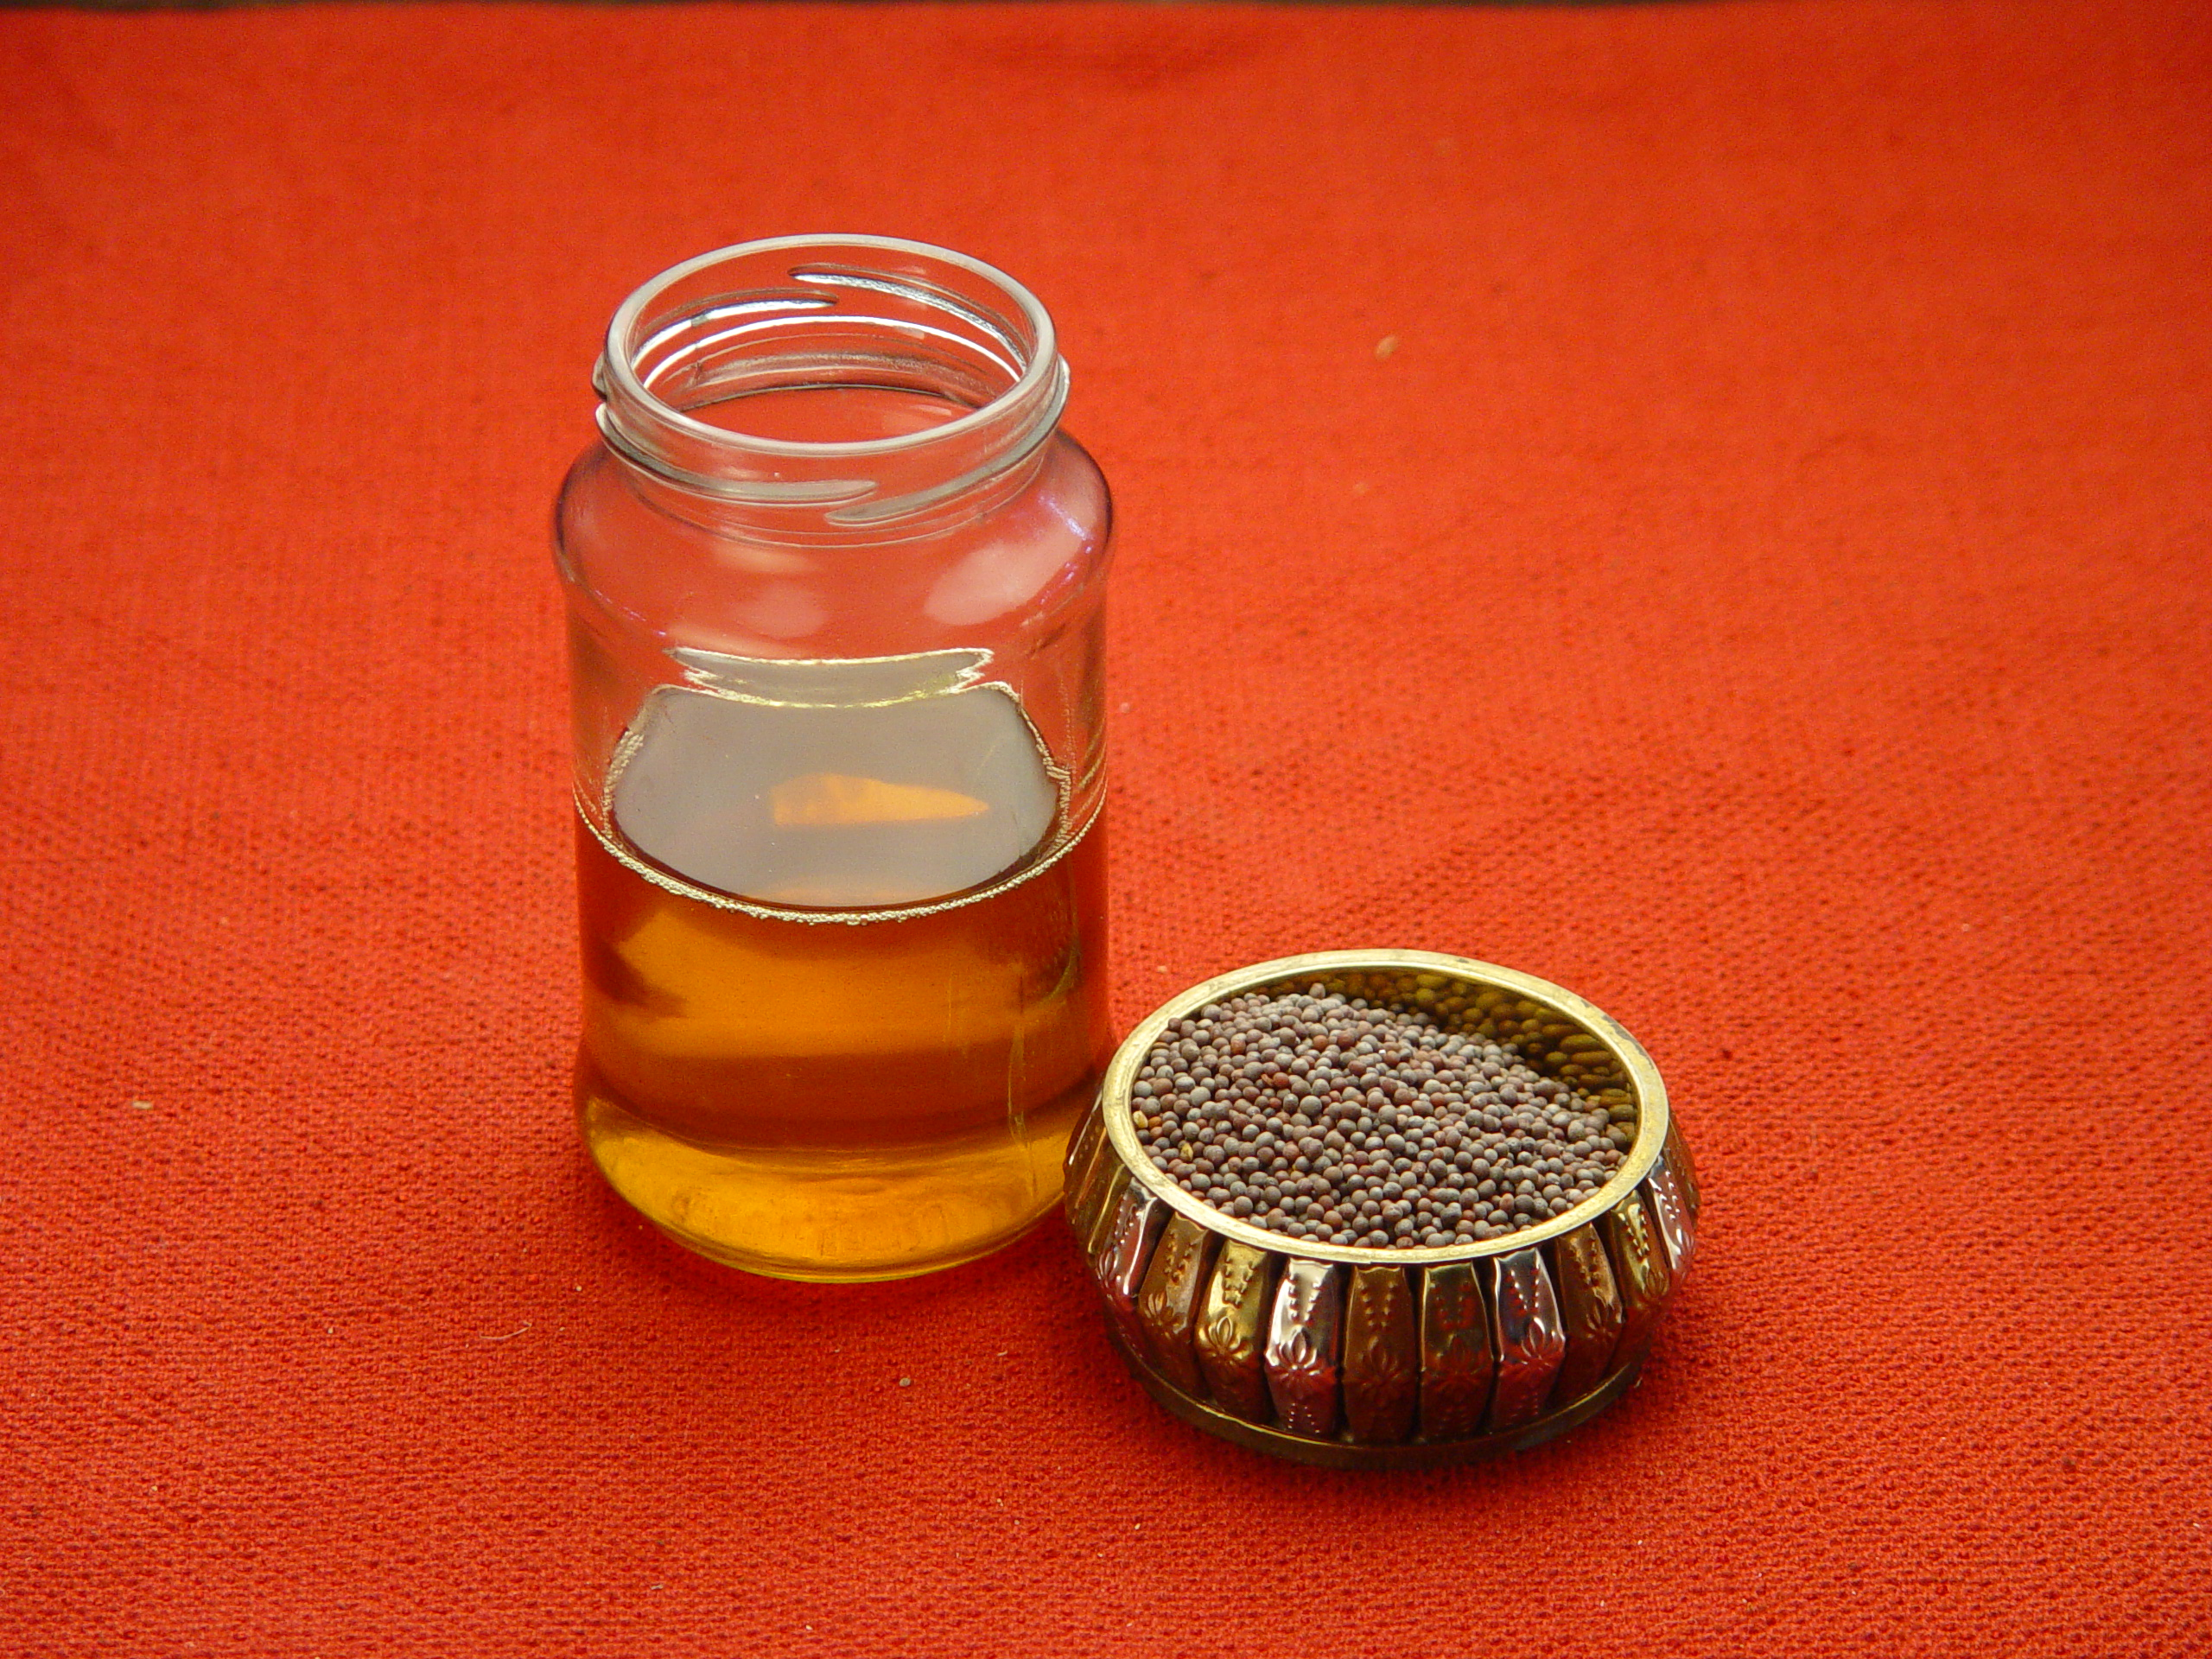 You should know that mustard oil benefits can be life changing.